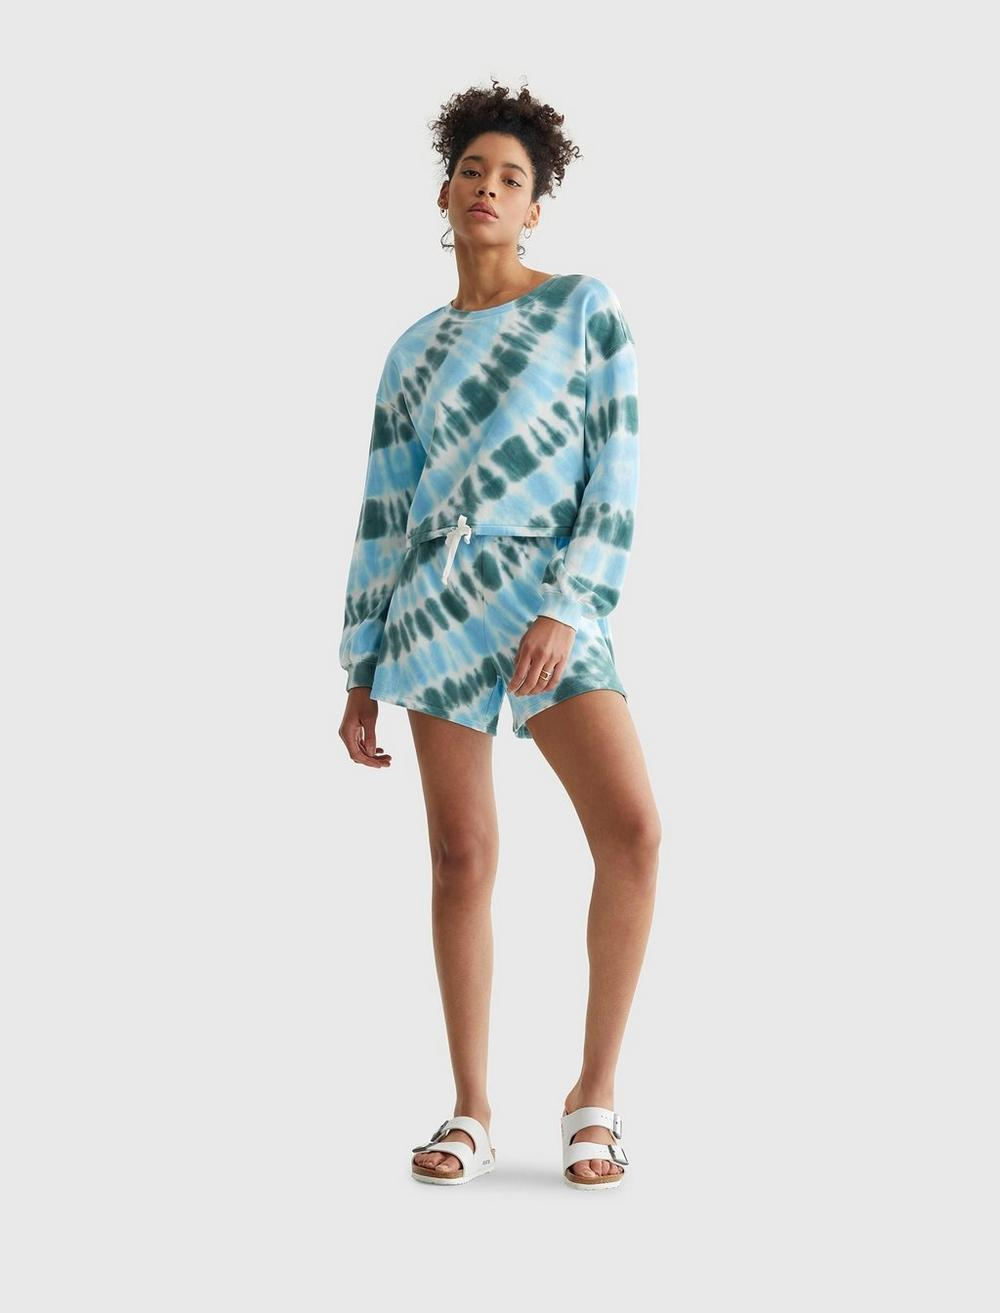 COOL FOR SUMMER CROPPED CREW, image 2